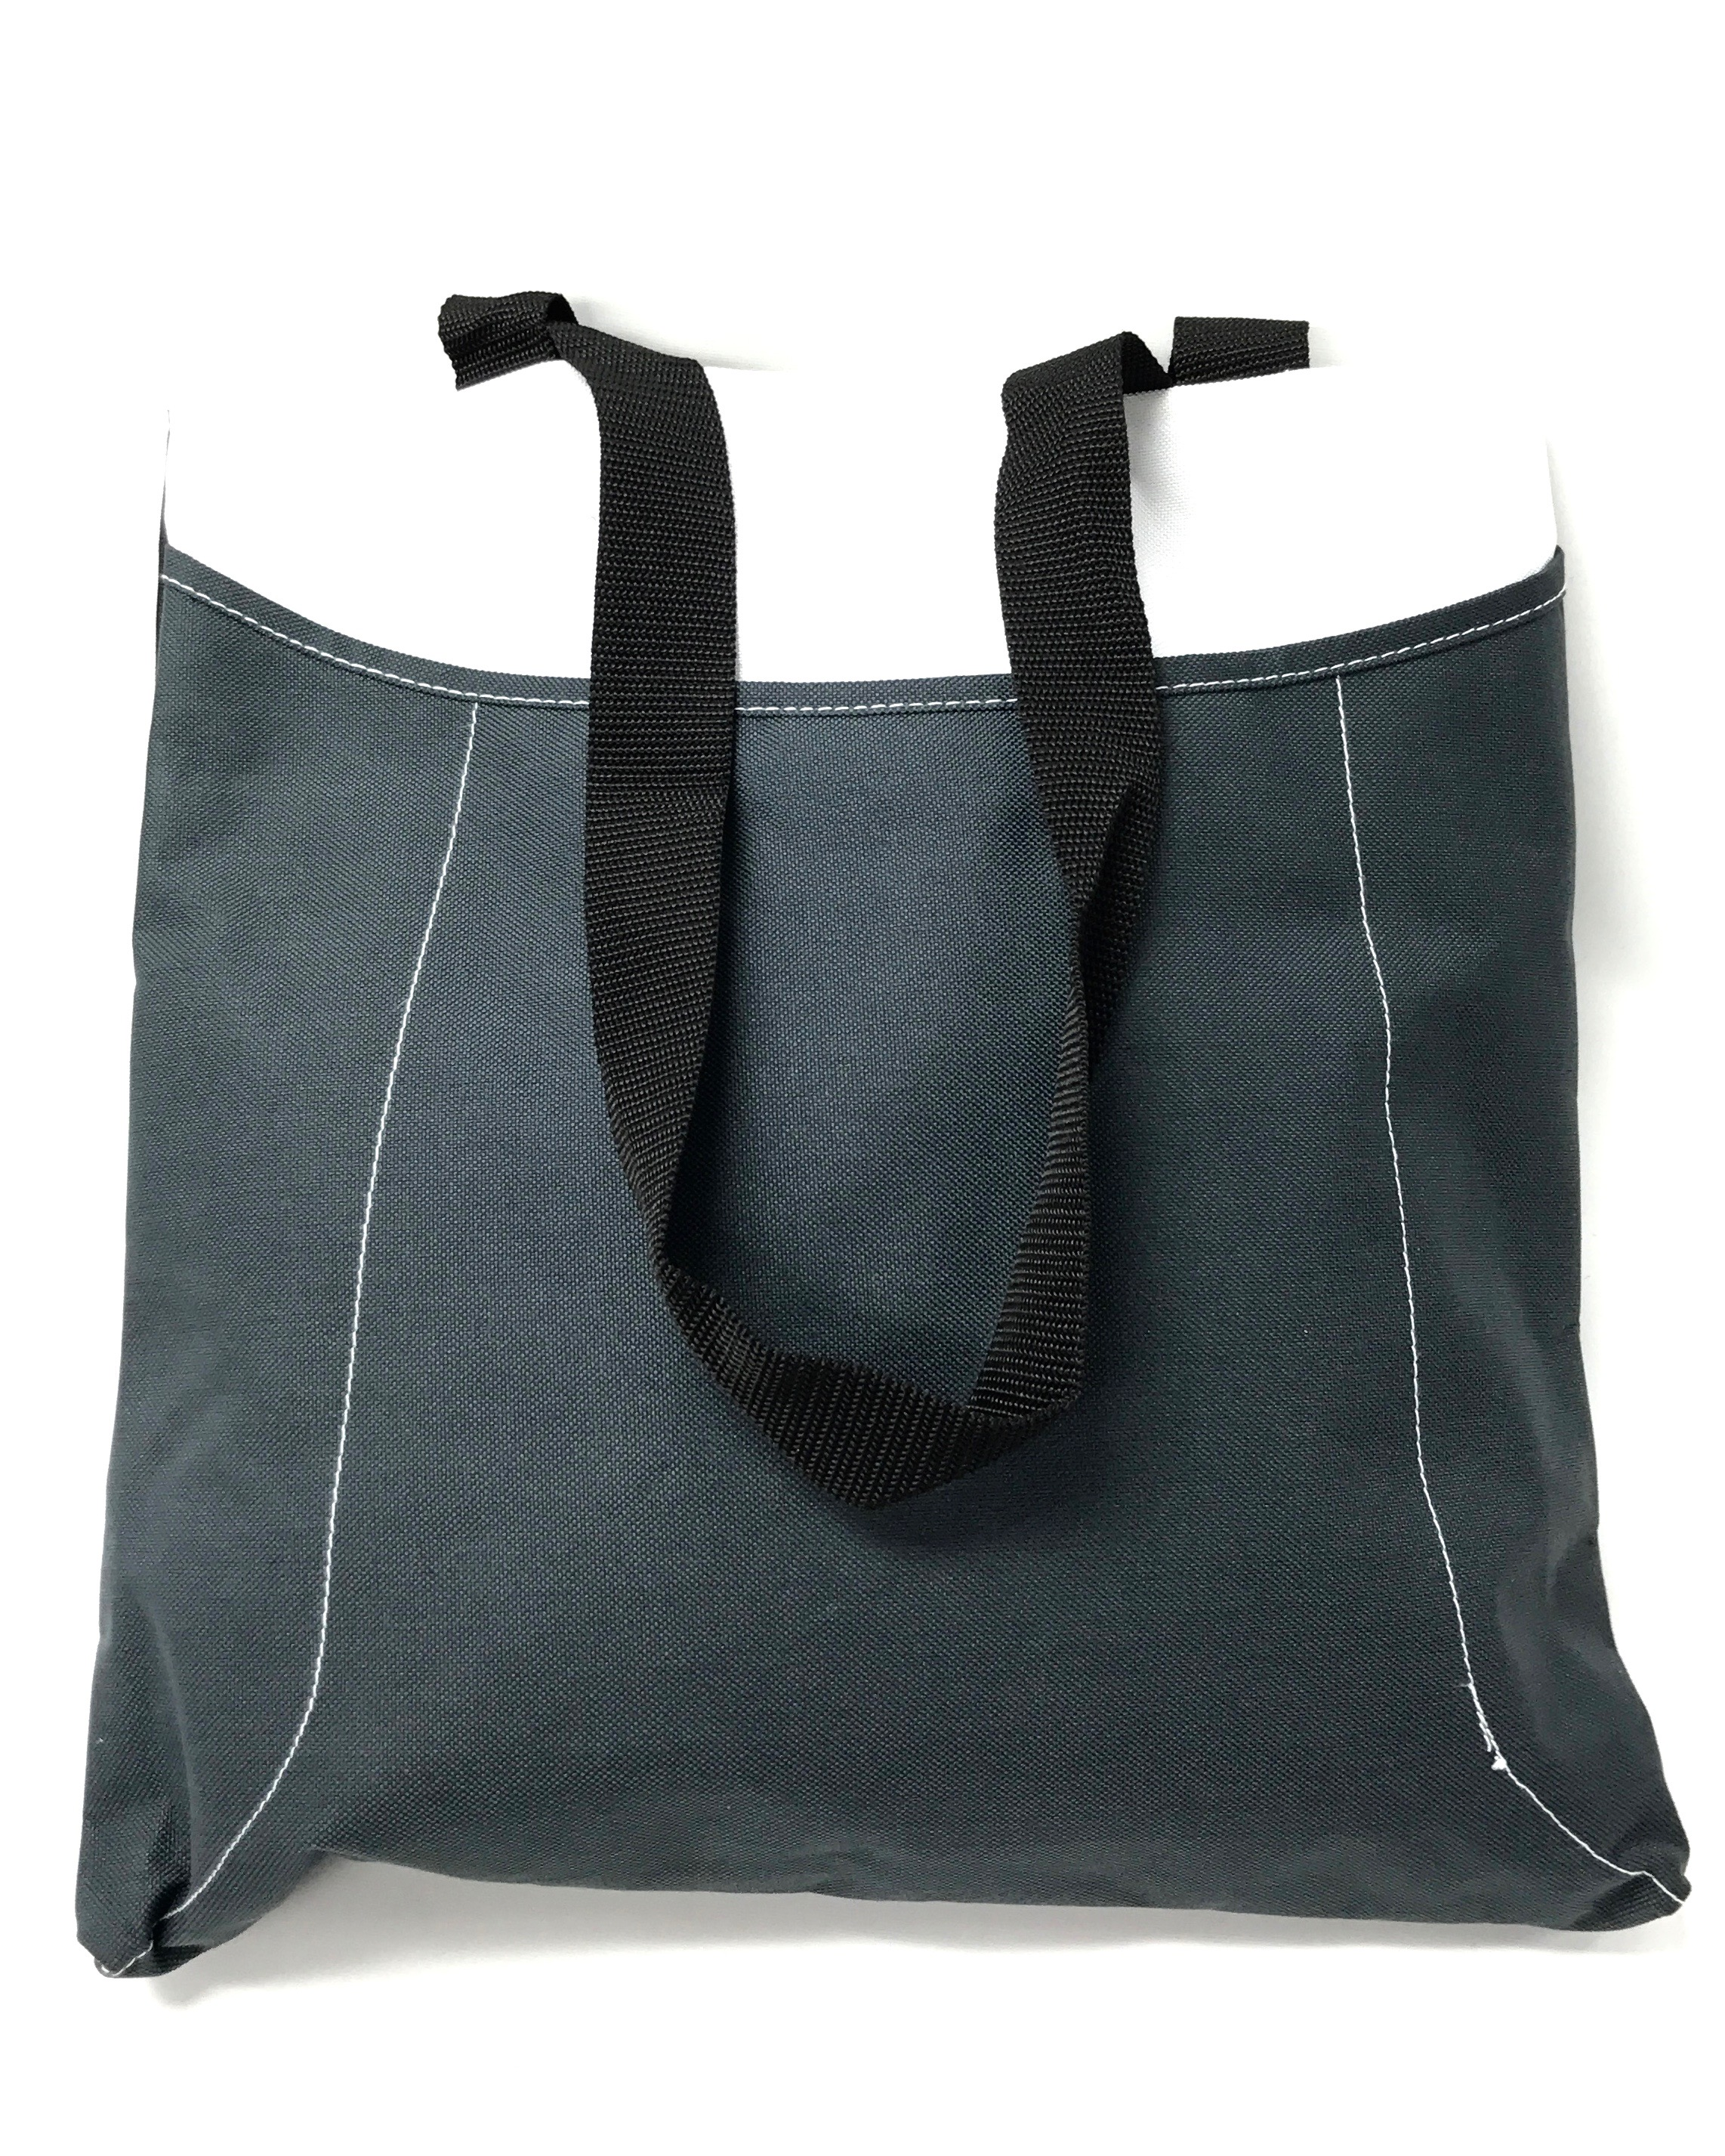 (120076) Snap It Tote - Charcoal